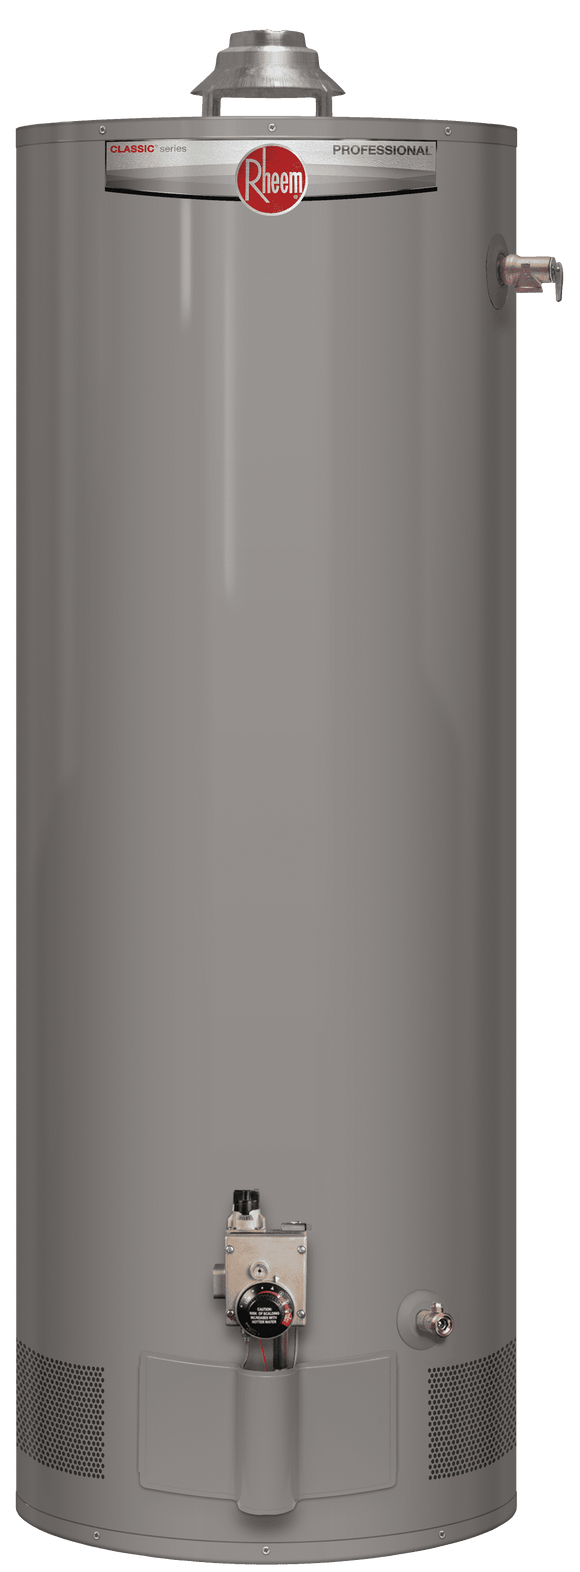 RHEEM PROG40S-38N RH62 Professional Classic 40 Gallon Short 38,000 BTU Natural Gas Residential Water Heater